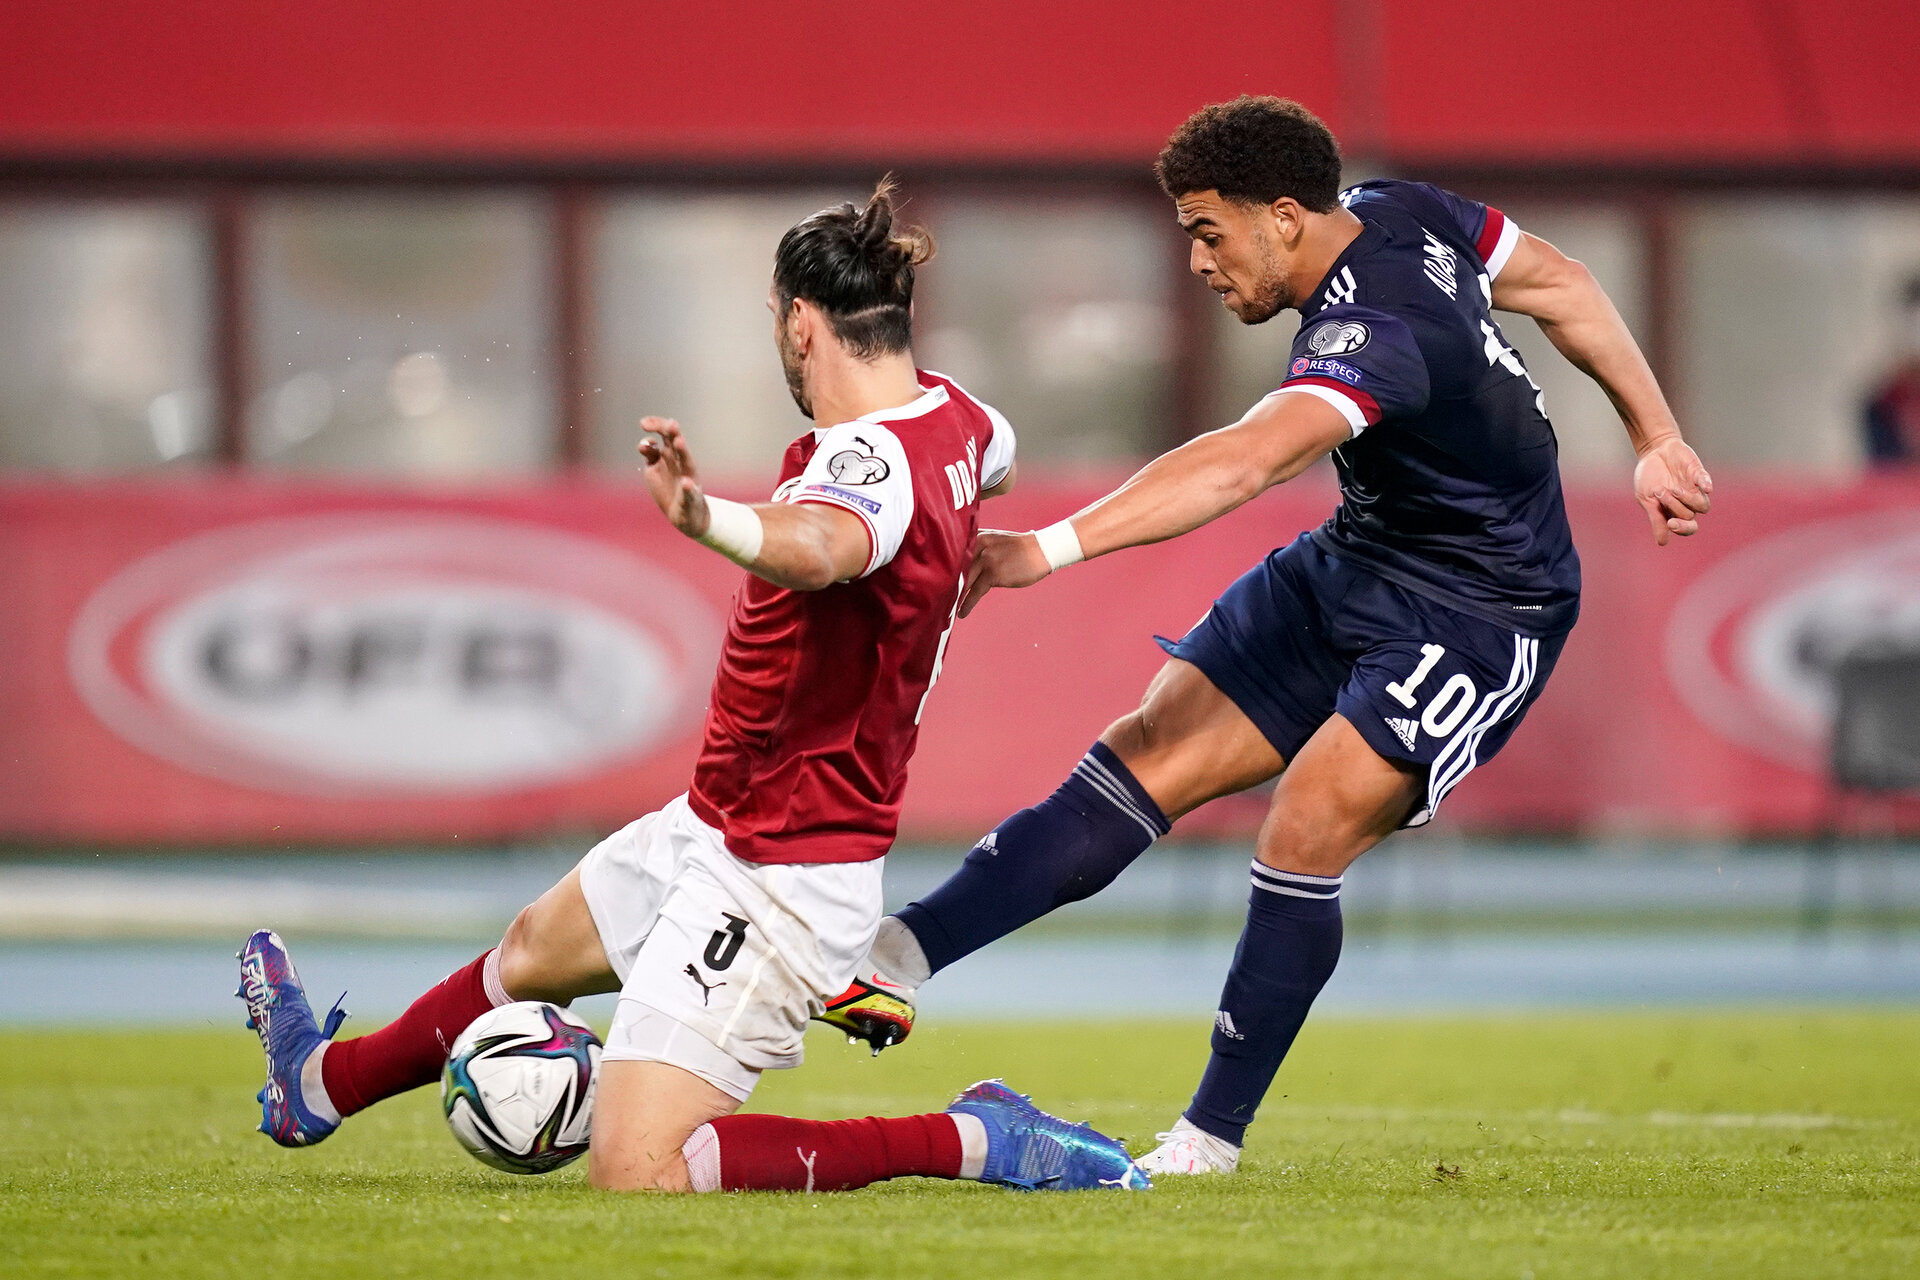 VIENNA, AUSTRIA - SEPTEMBER 07: Che Adams of Scotland shoots whilst under pressure from Aleksandar Dragovic of Austria during the 2022 FIFA World Cup Qualifier match between Austria and Scotland at Ernst Happel Stadion on September 07, 2021 in Vienna, Austria. (Photo by Christian Hofer/Getty Images)